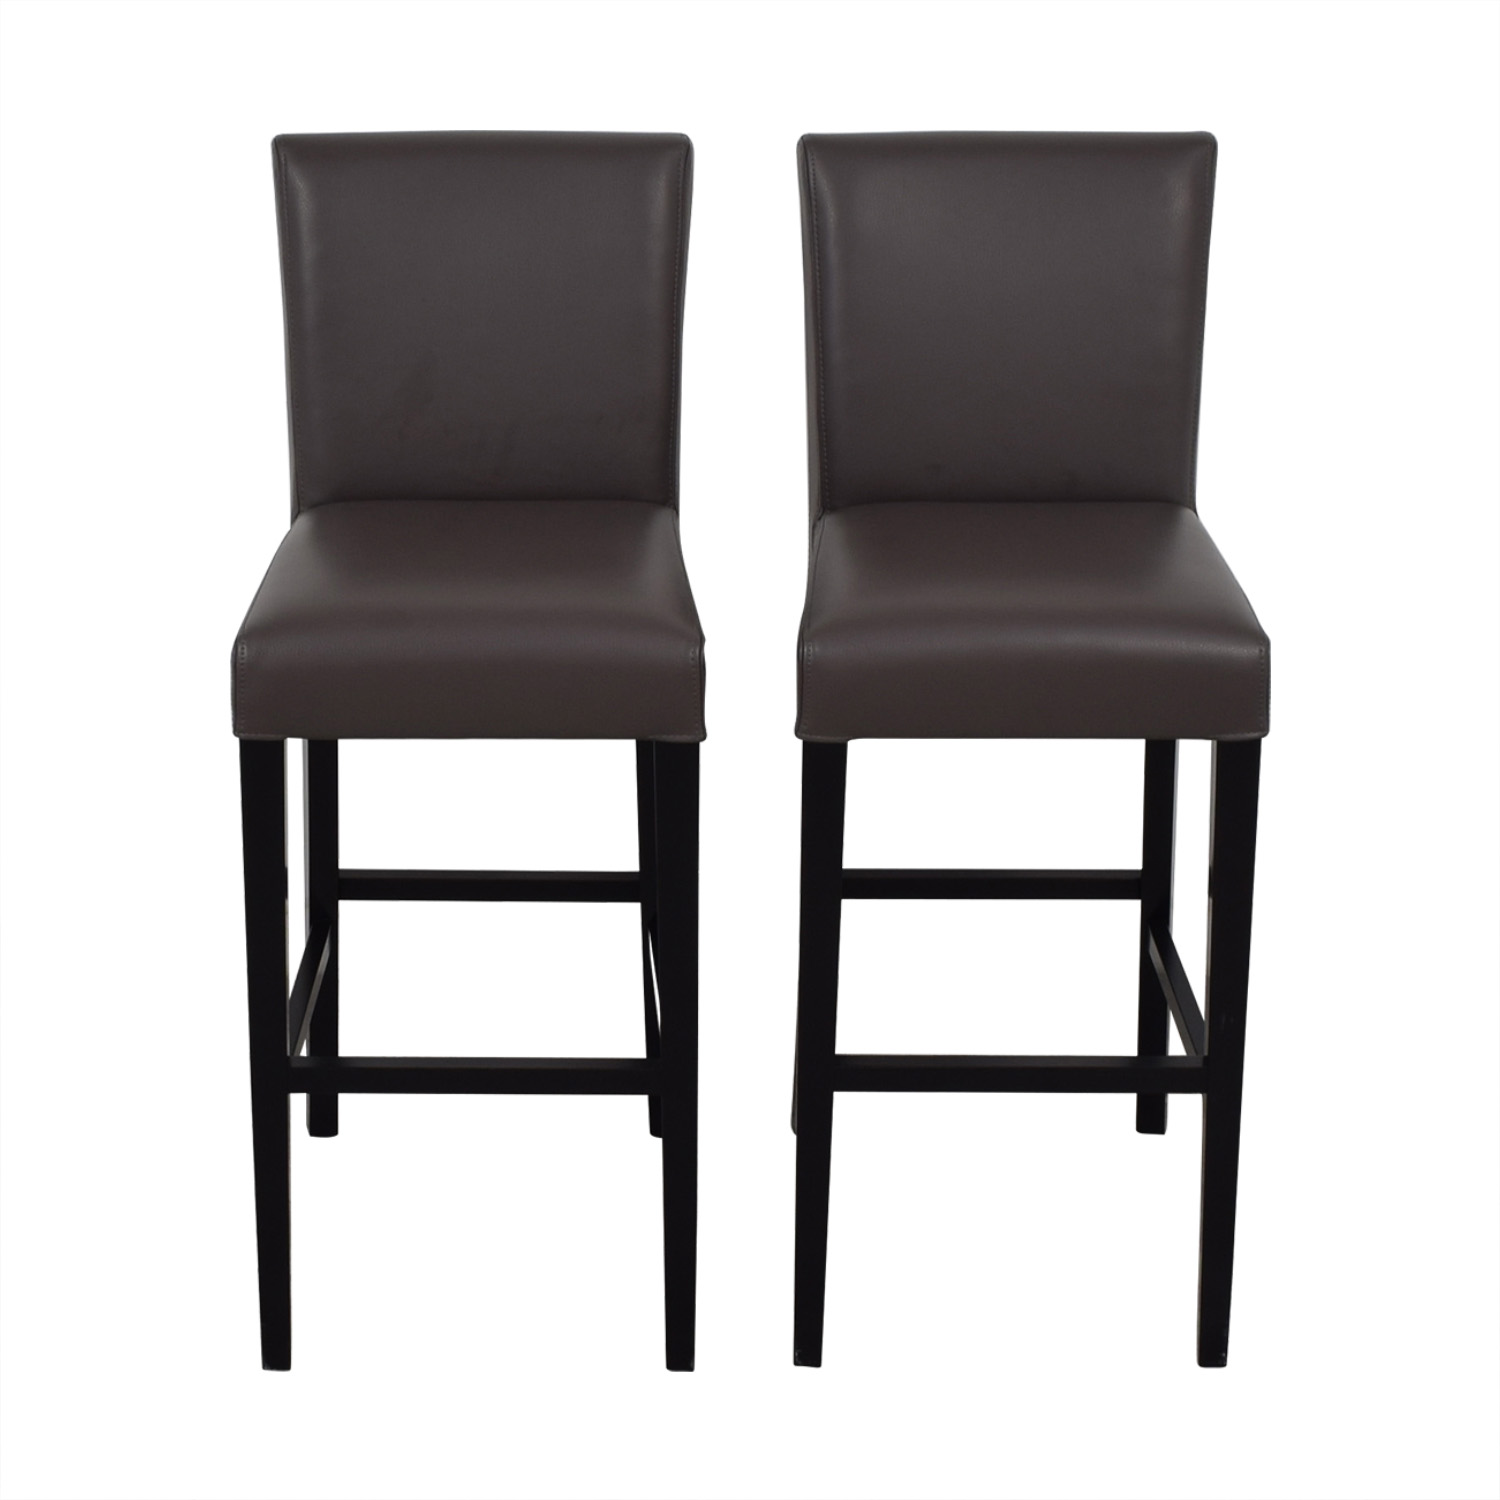 Crate & Barrel Crate & Barrel Lowe Smoke Leather Bar Stools used